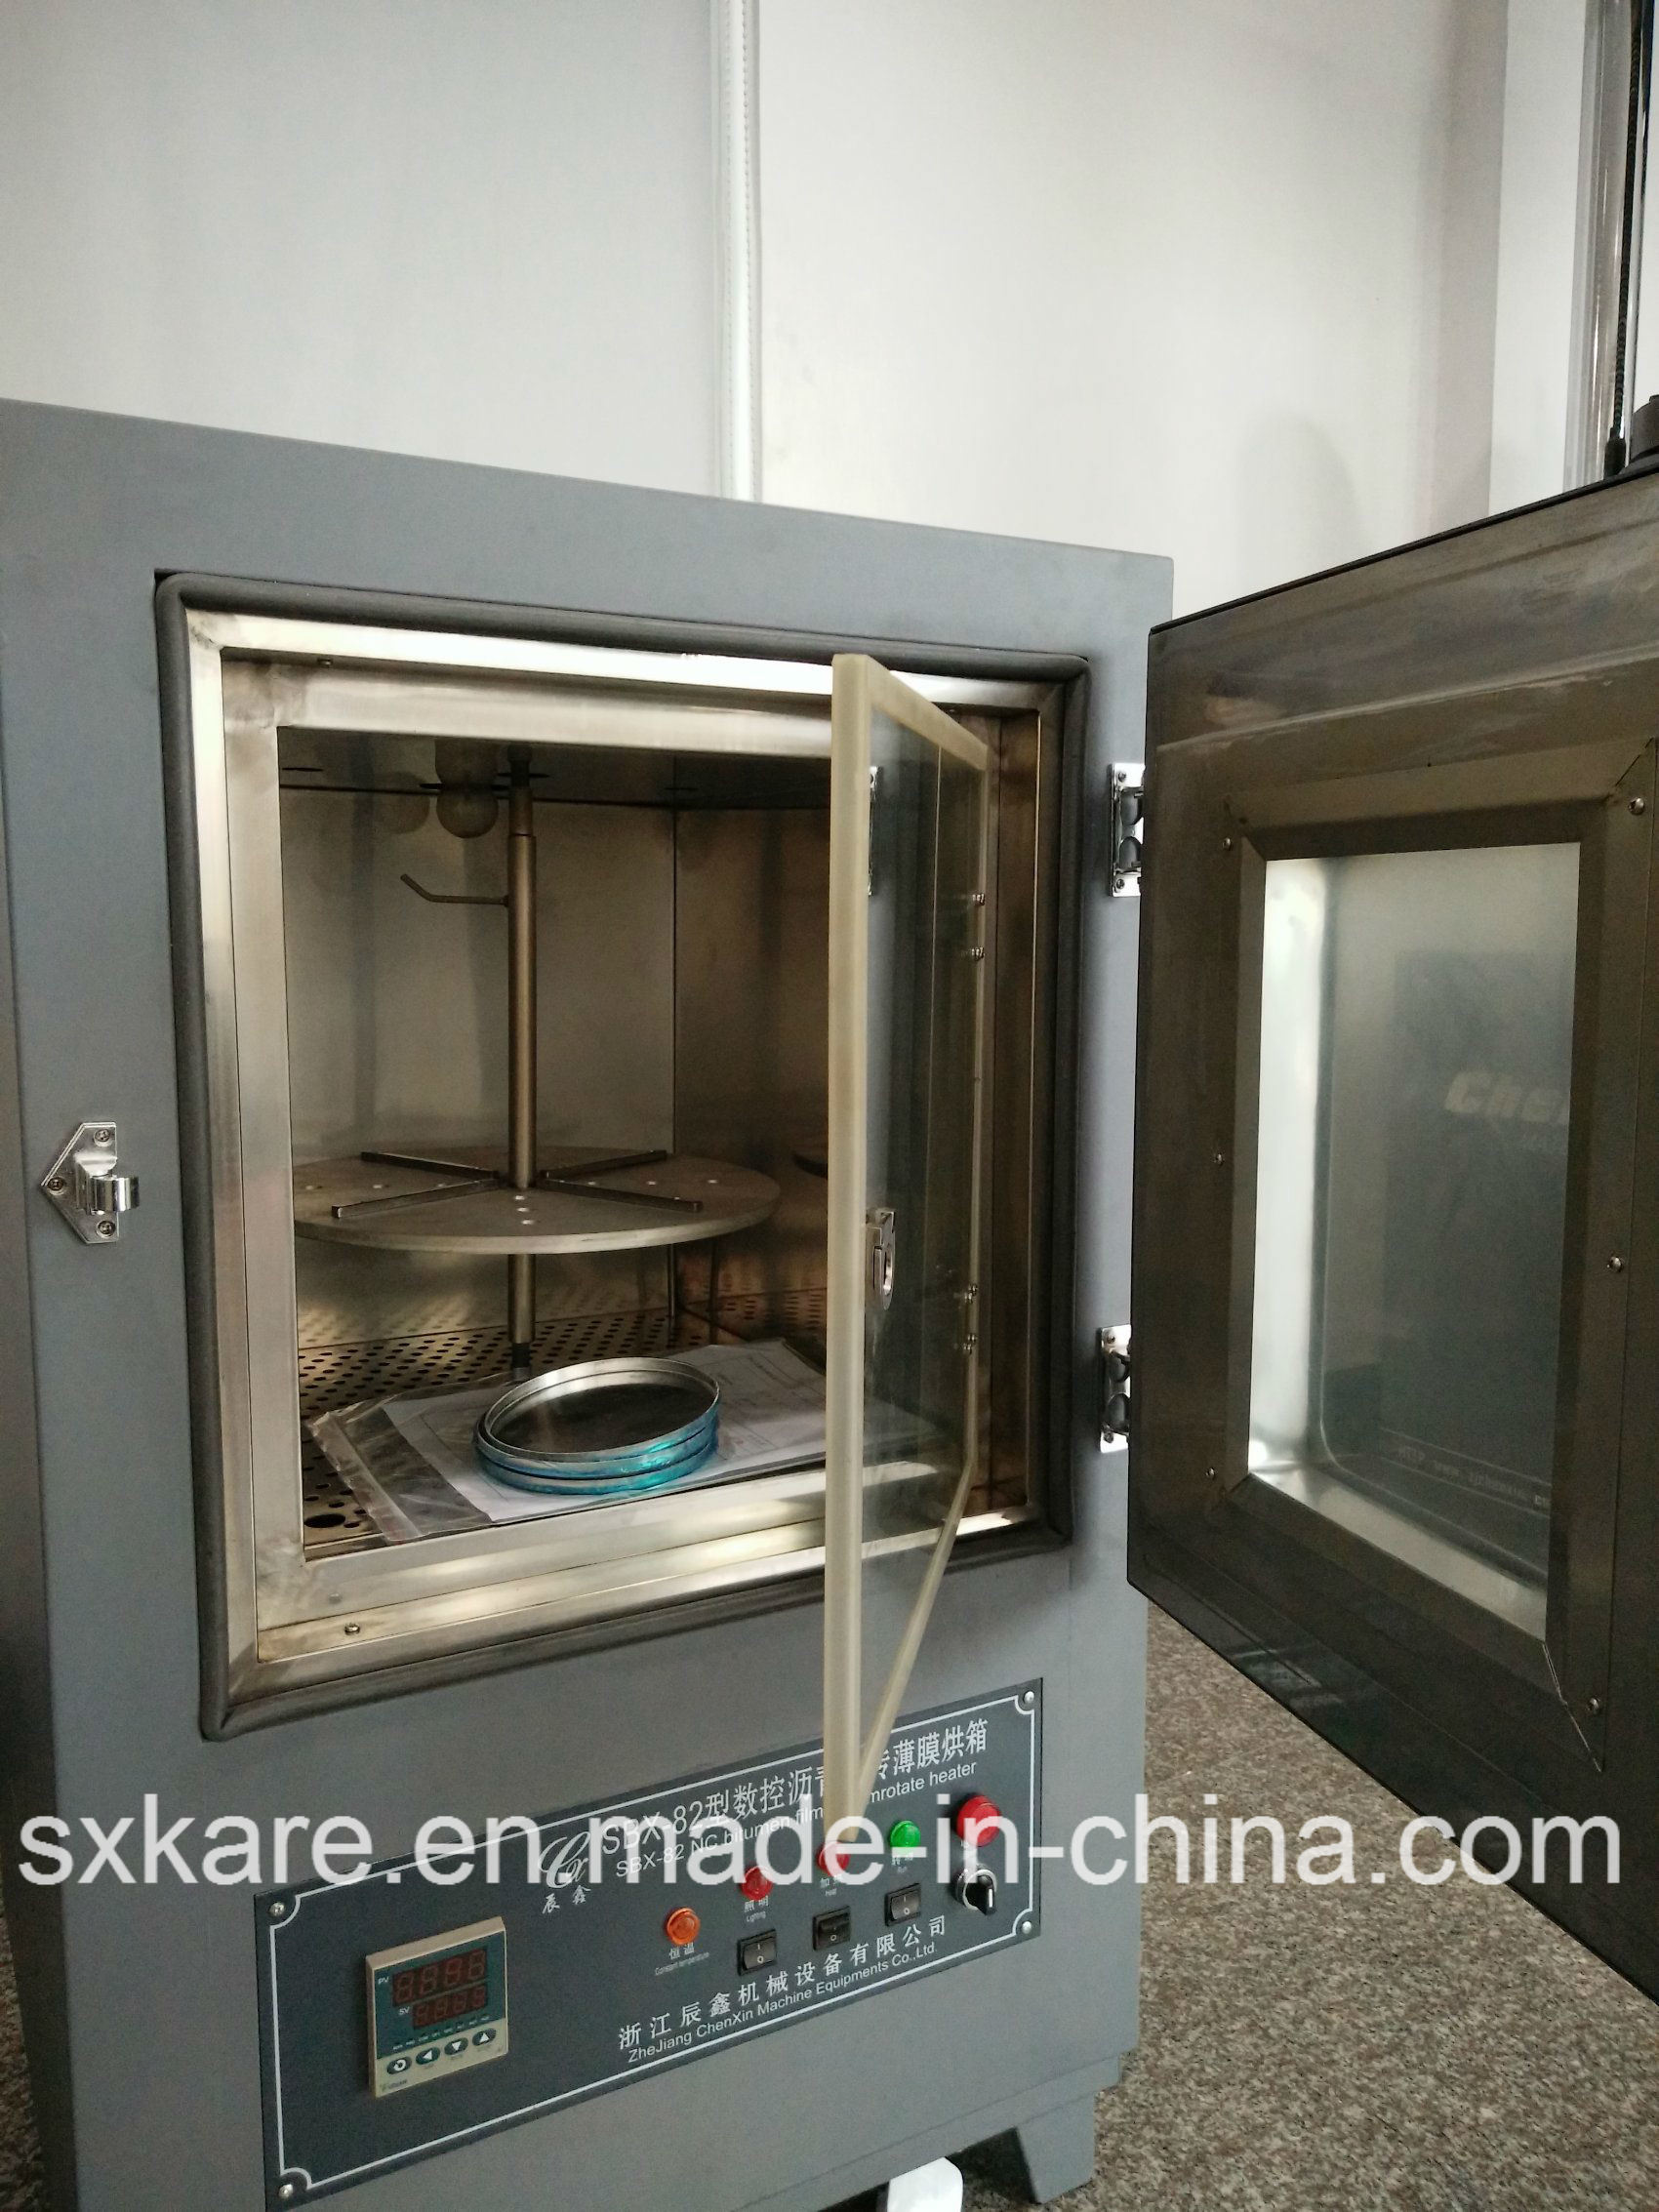 Thin Film Oven Test, Tfot (SBX-82)